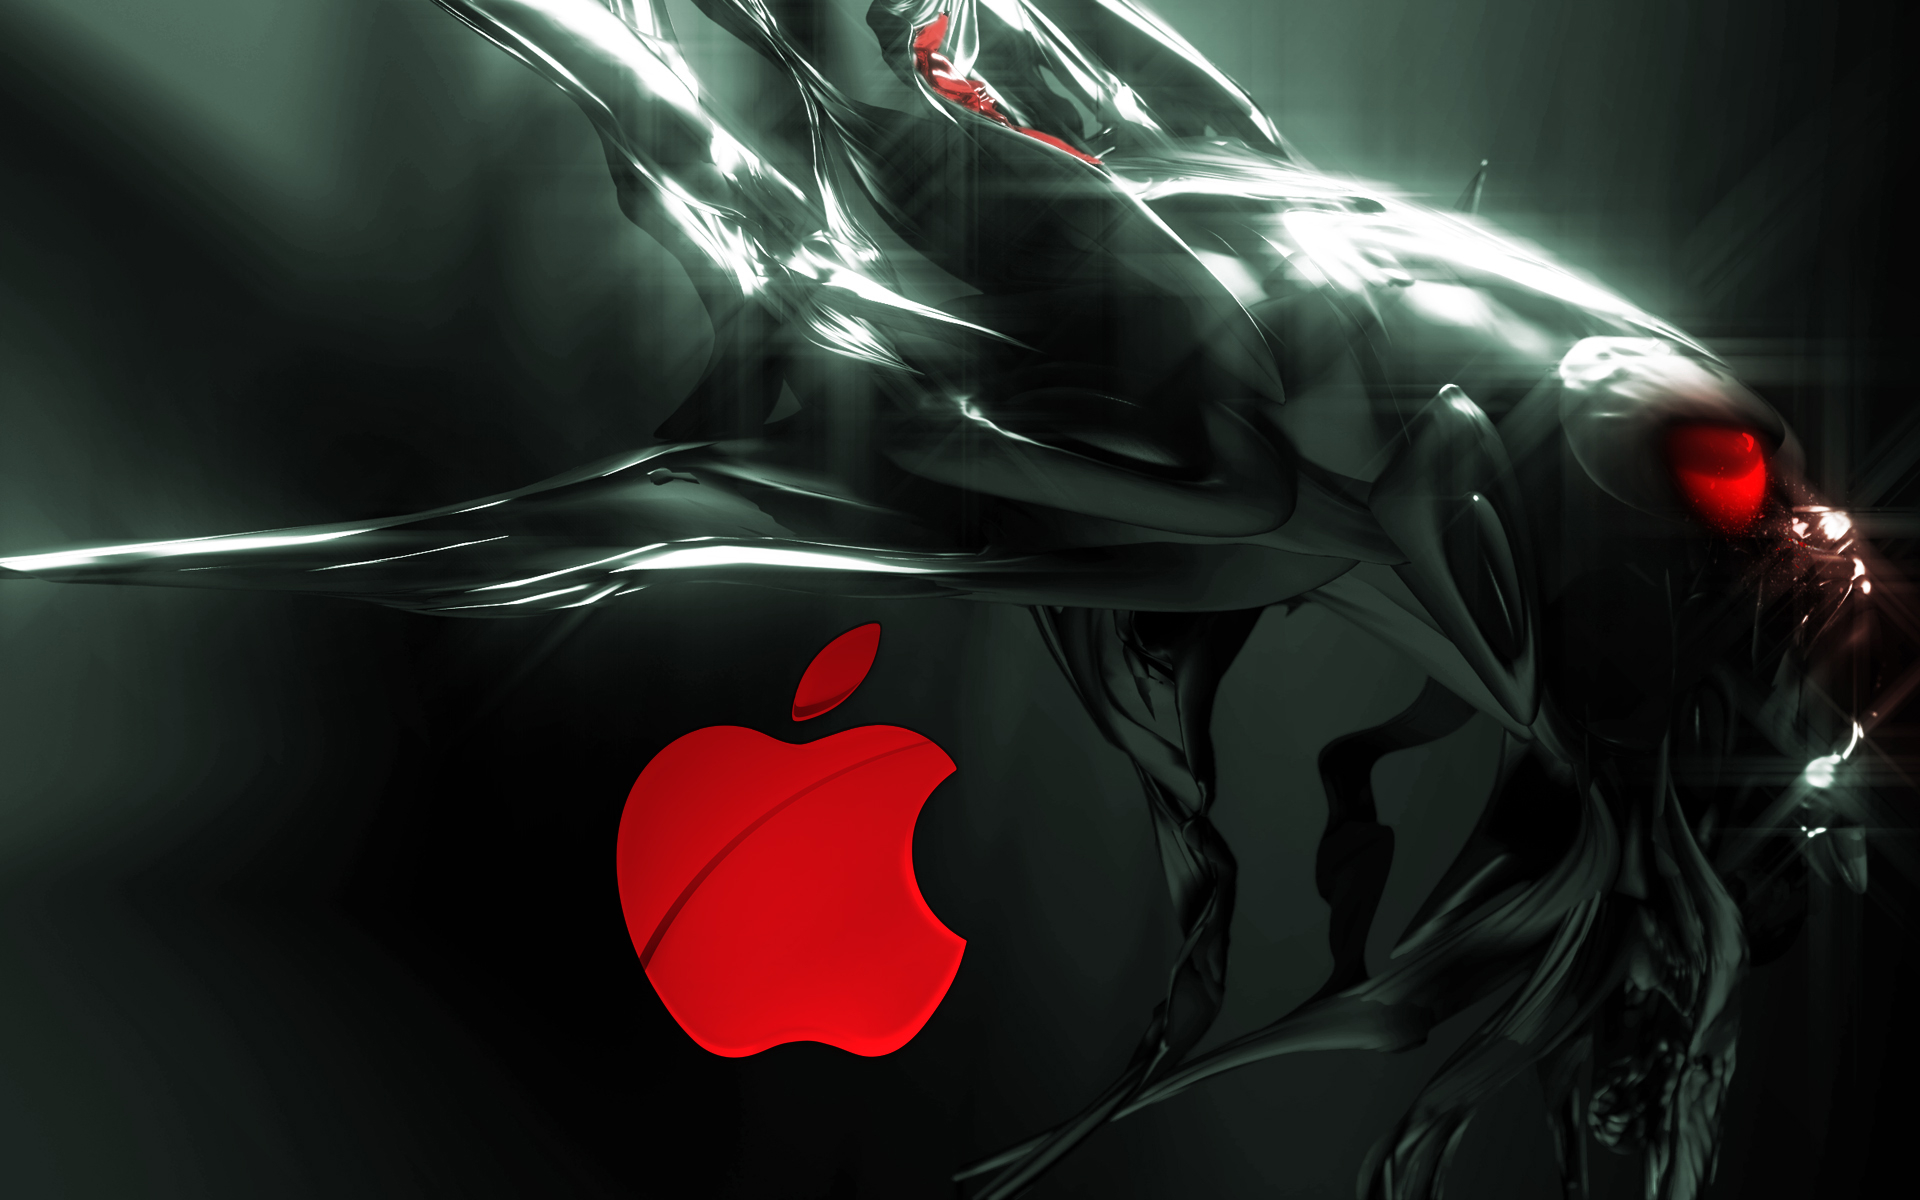 Wallpaper Alien Apple Network